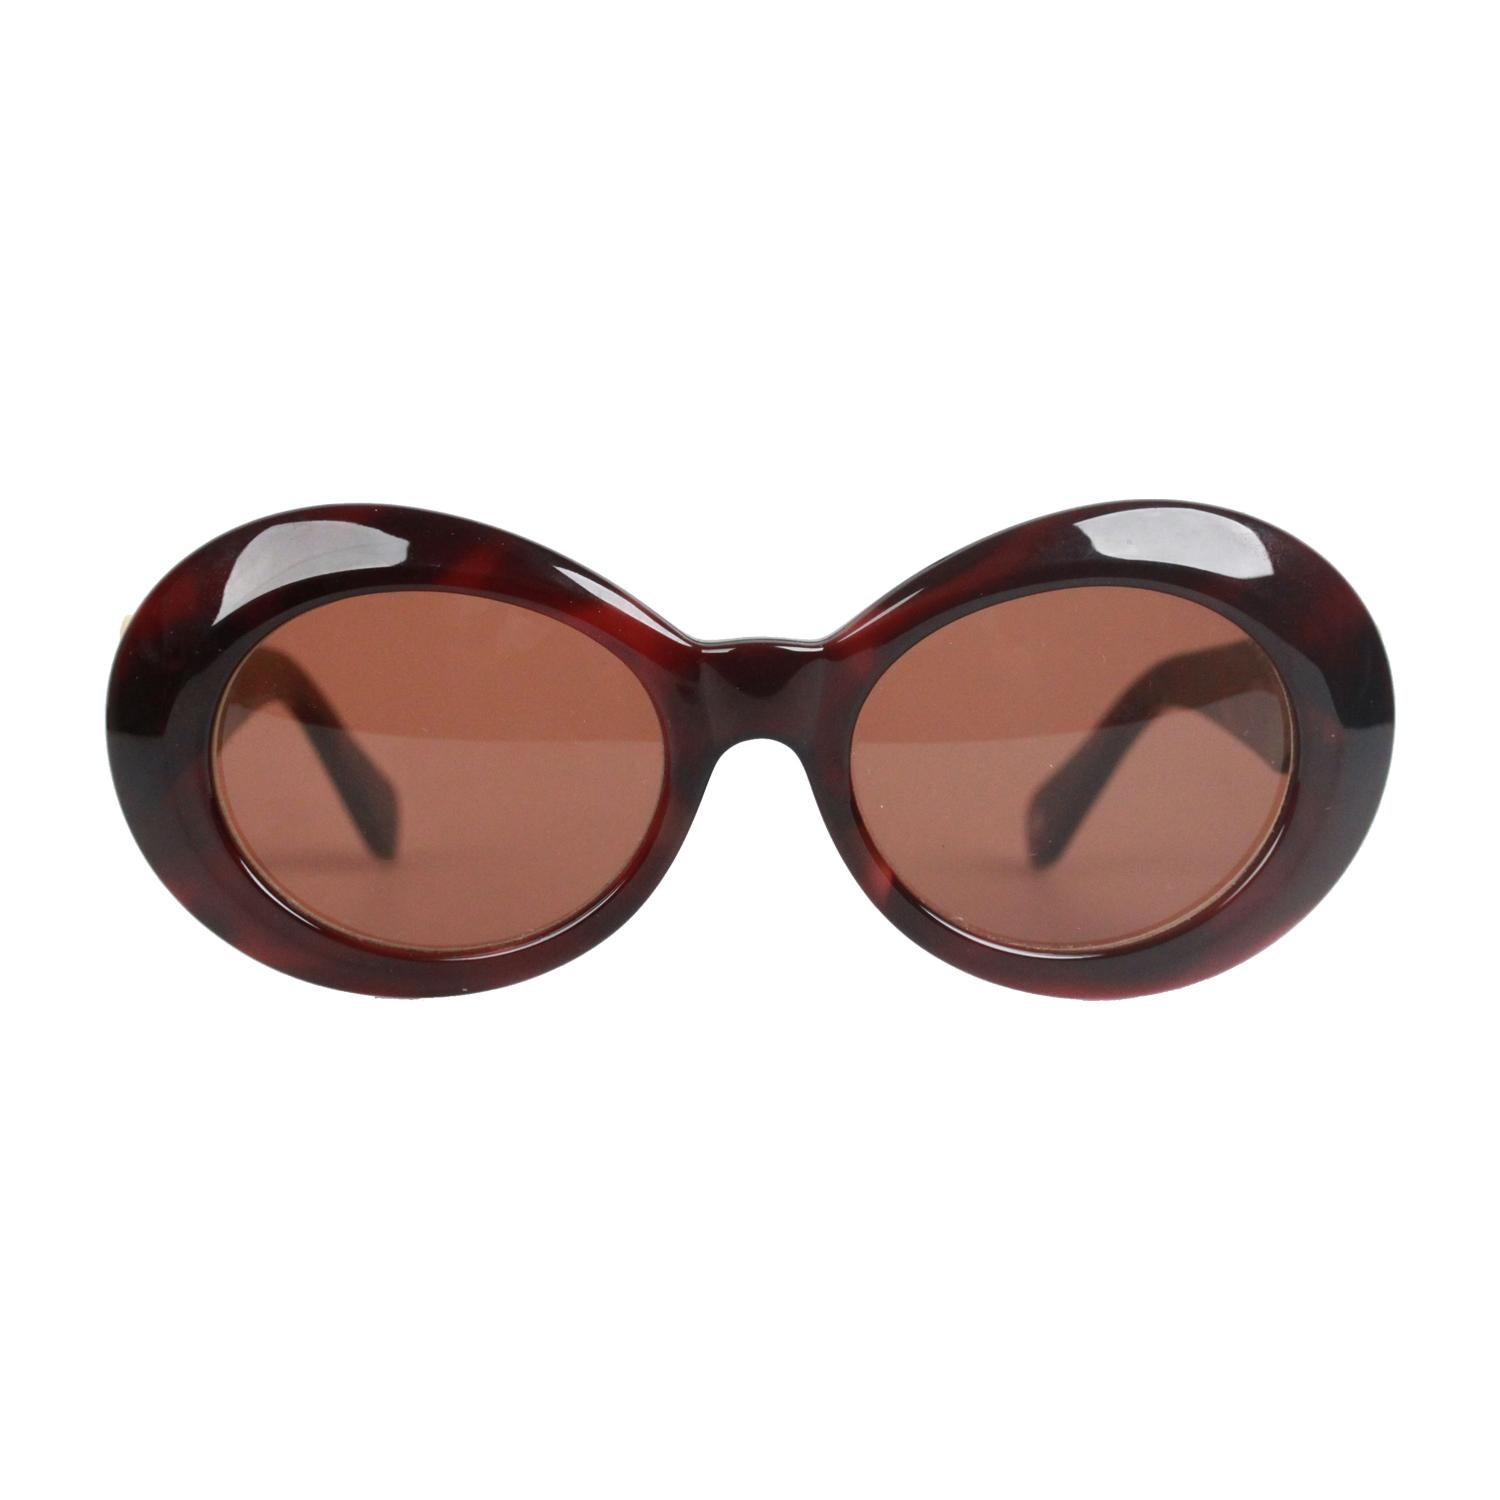 7d38272a142 Authentic Versace Brown Sunglasses Mod 418 Col 900 Gold Medusa For Sale at  1stdibs